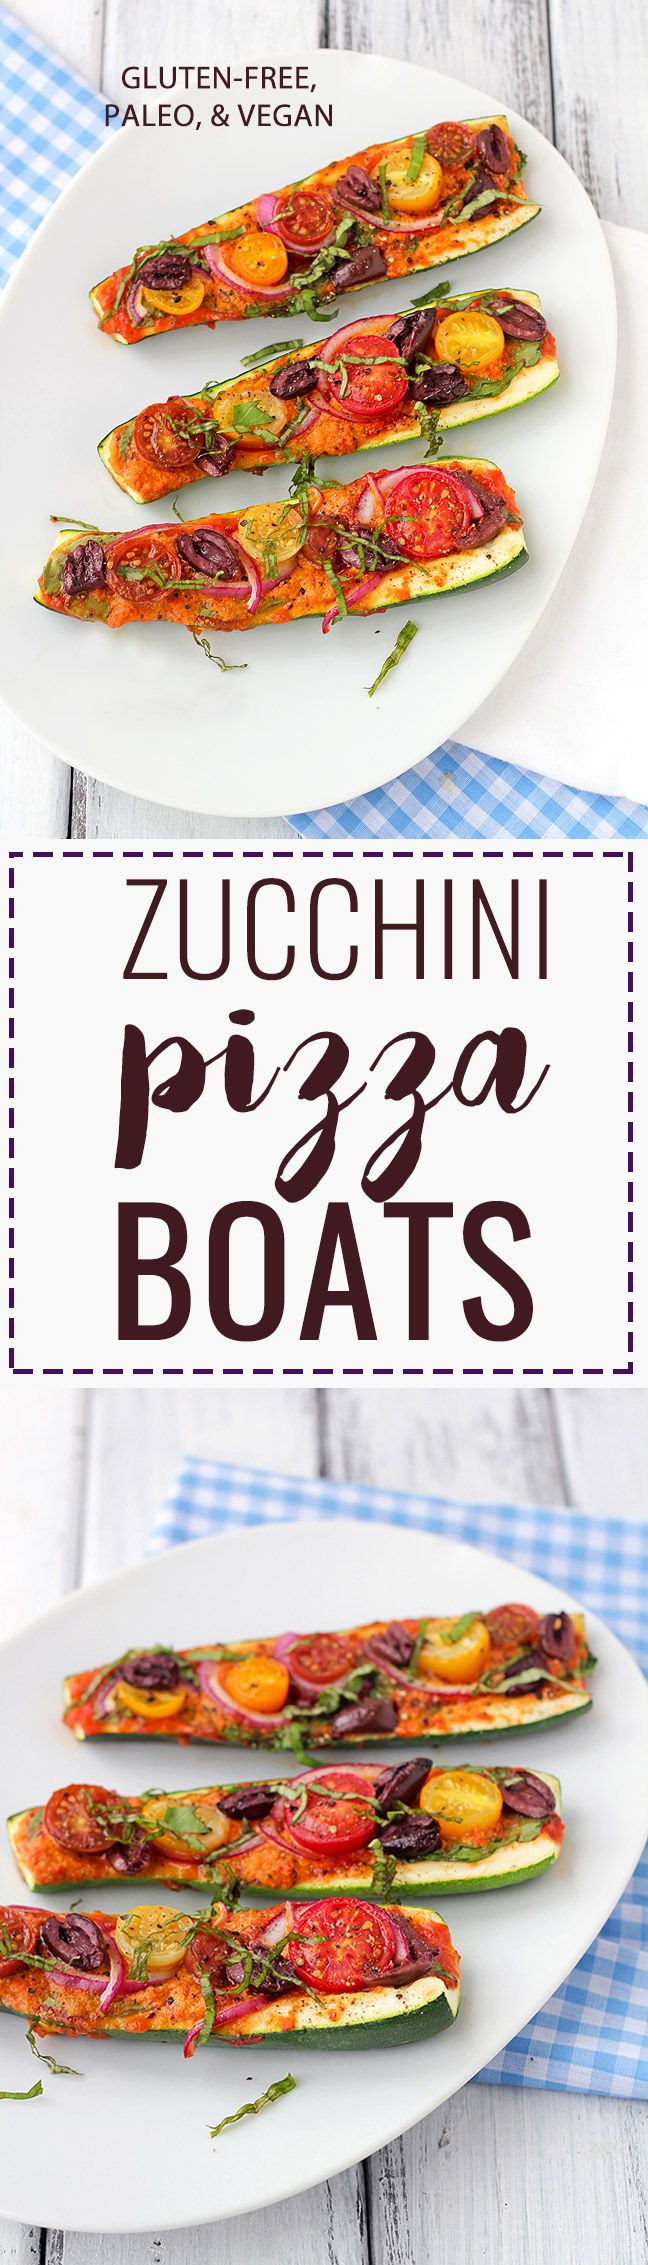 Zucchini Pizza Boats Recipe: A delicious, grain-free and dairy-free way to enjoy pizza! Paleo & vegan!